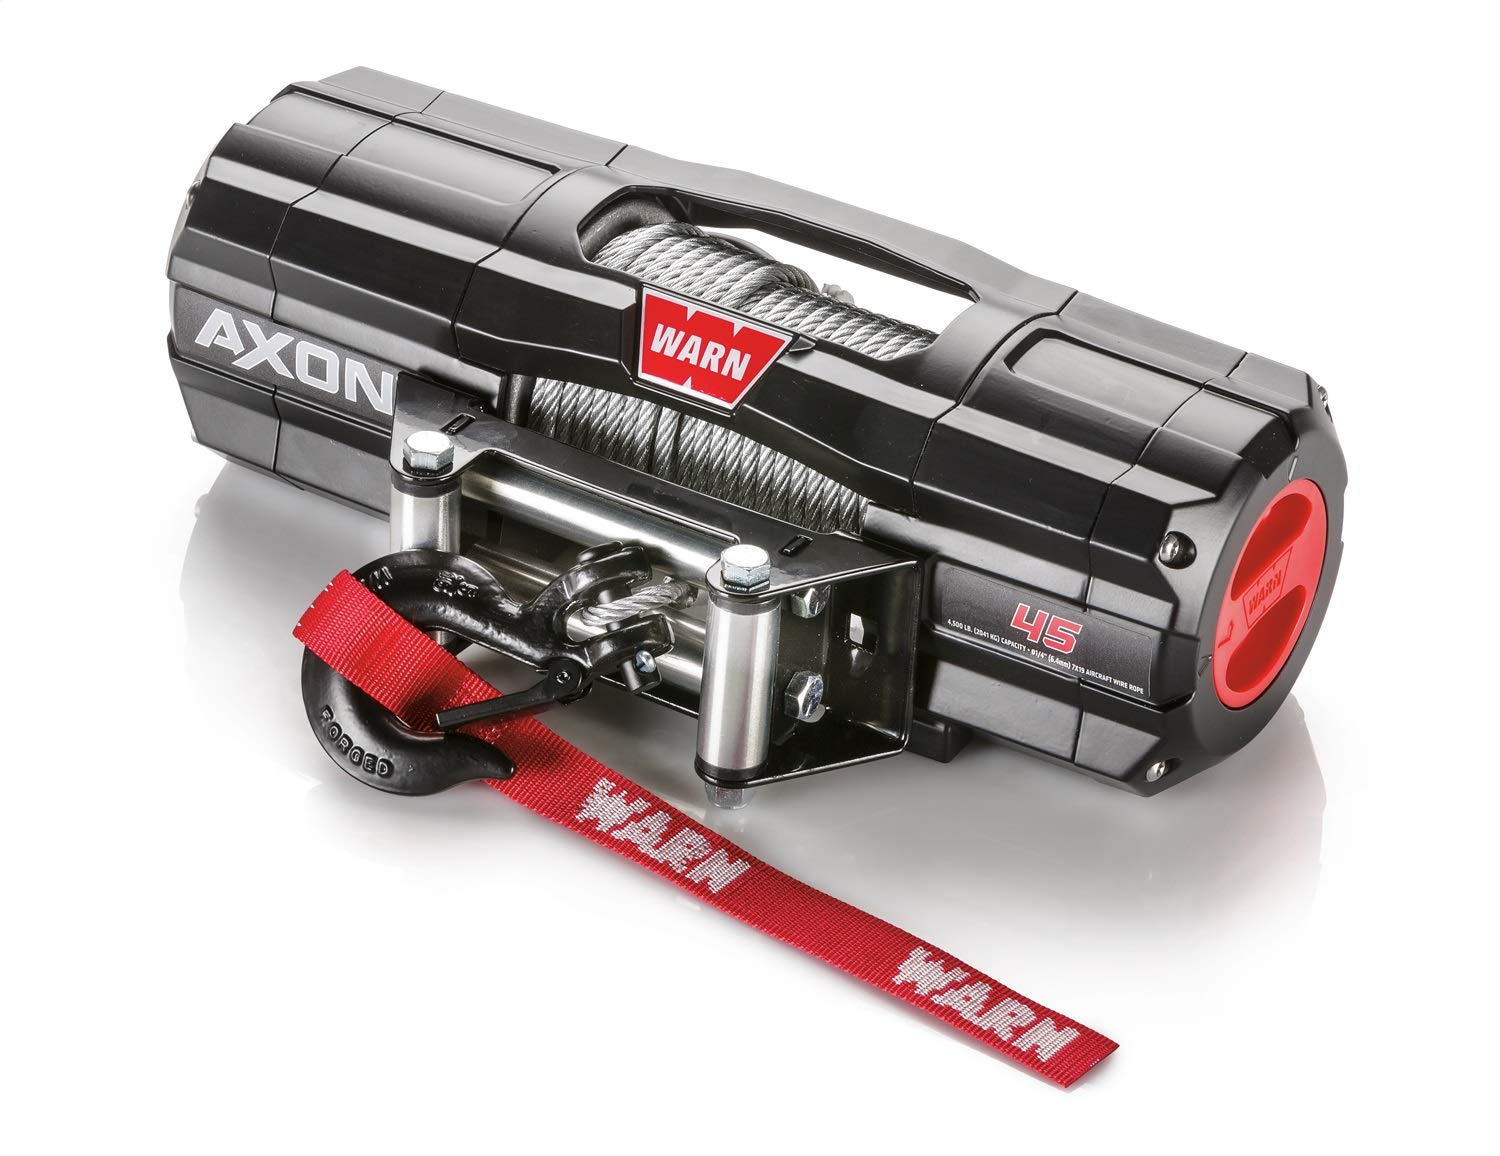 WARN 101145 AXON 45 Powersports Winch With Steel Rope by WARN (Image #3)